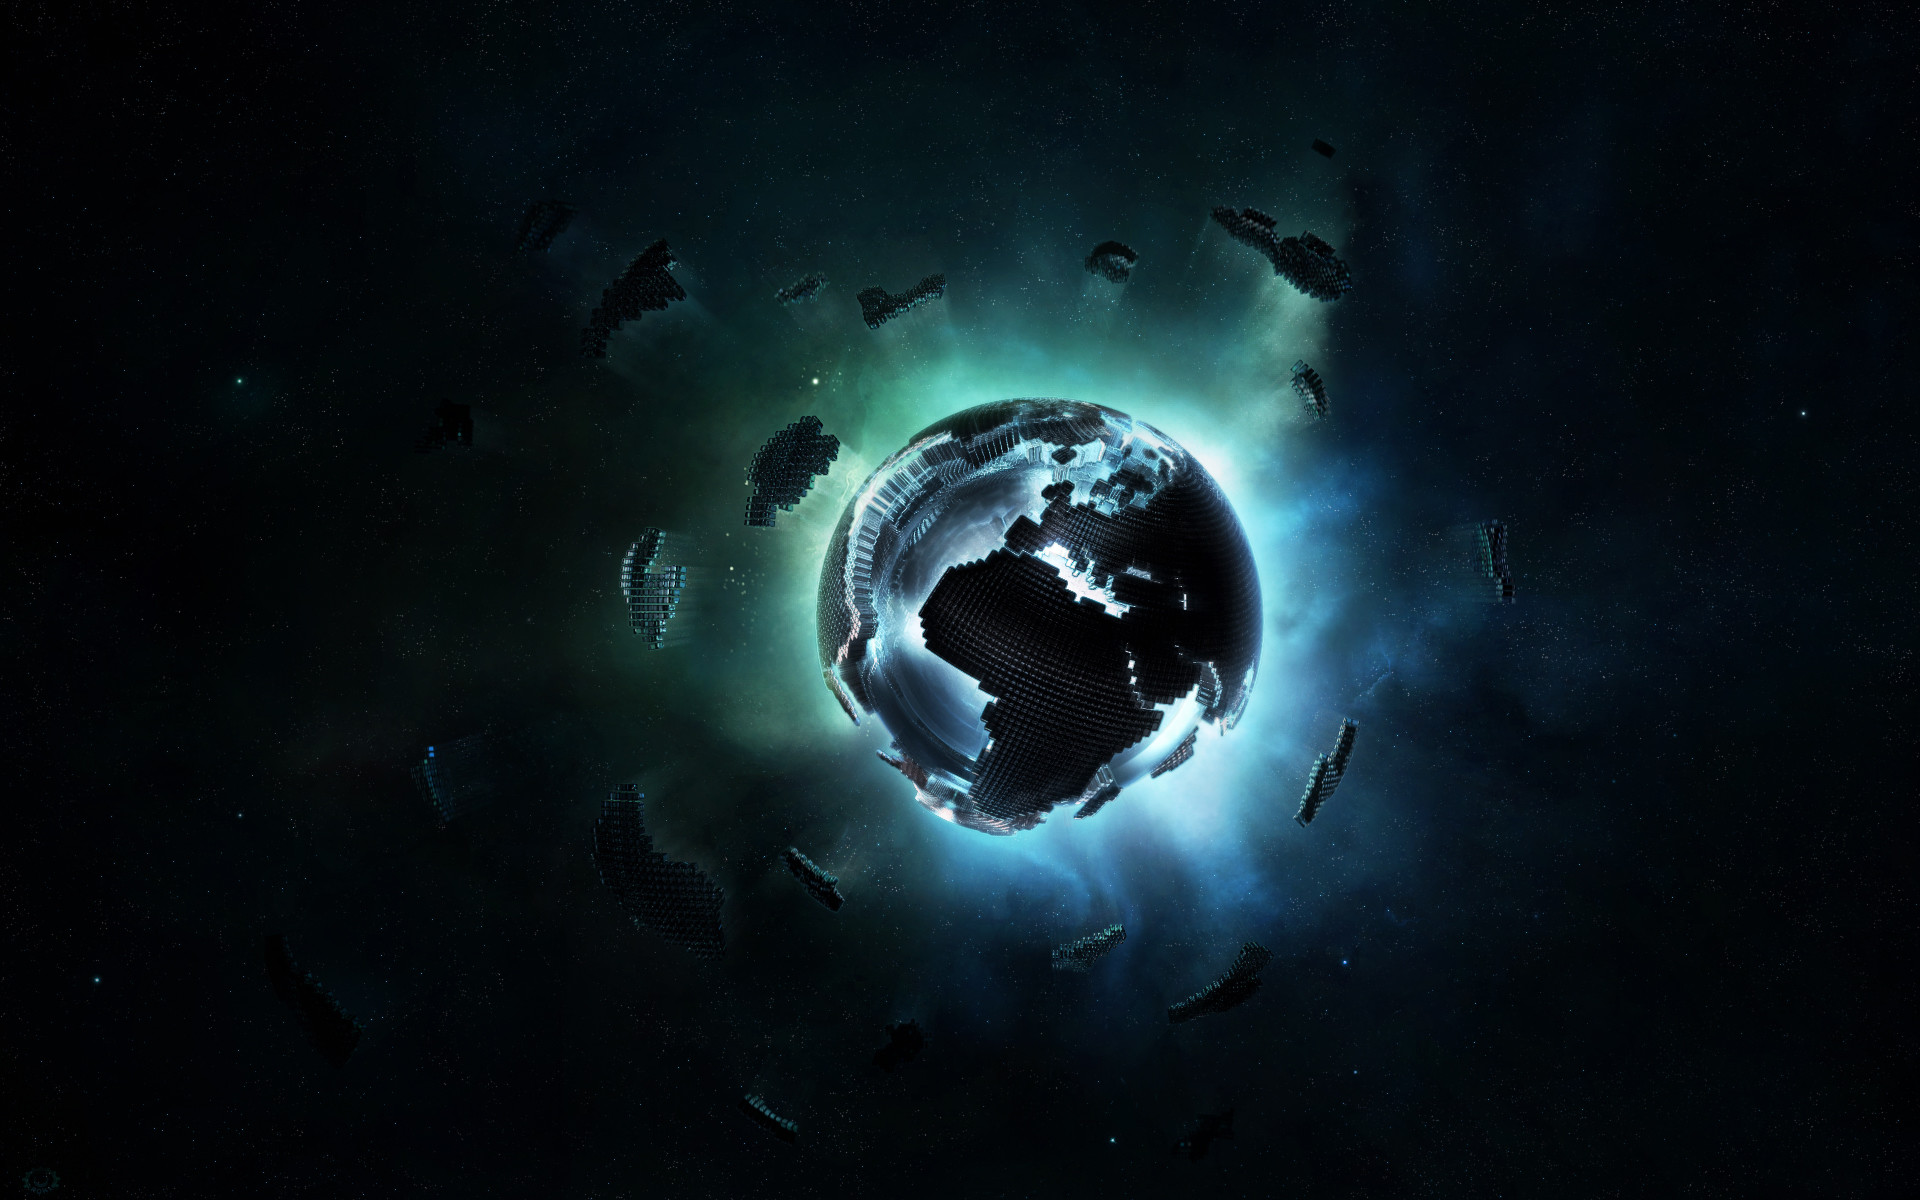 Pixel Earth HD Wallpapers Knowing Burning Earth HD Wallpapers